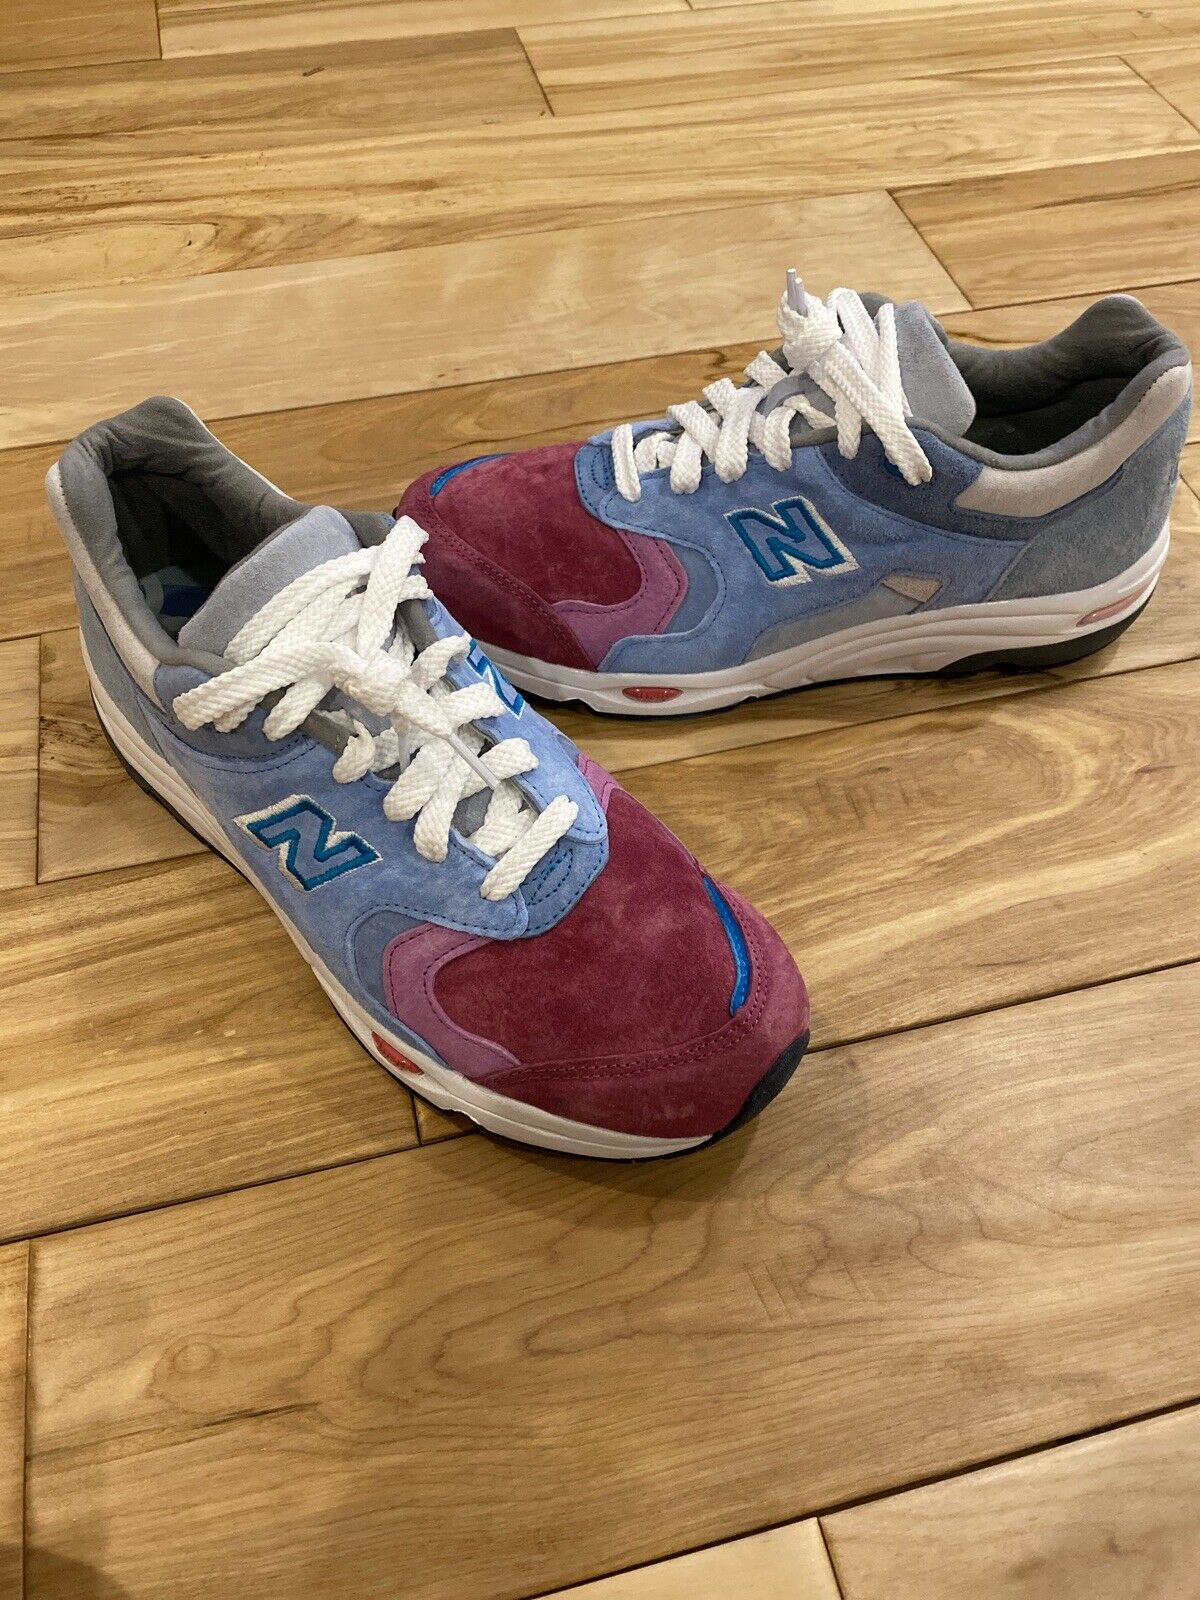 New Balance 1700 Kith The Colorist Pink Toe